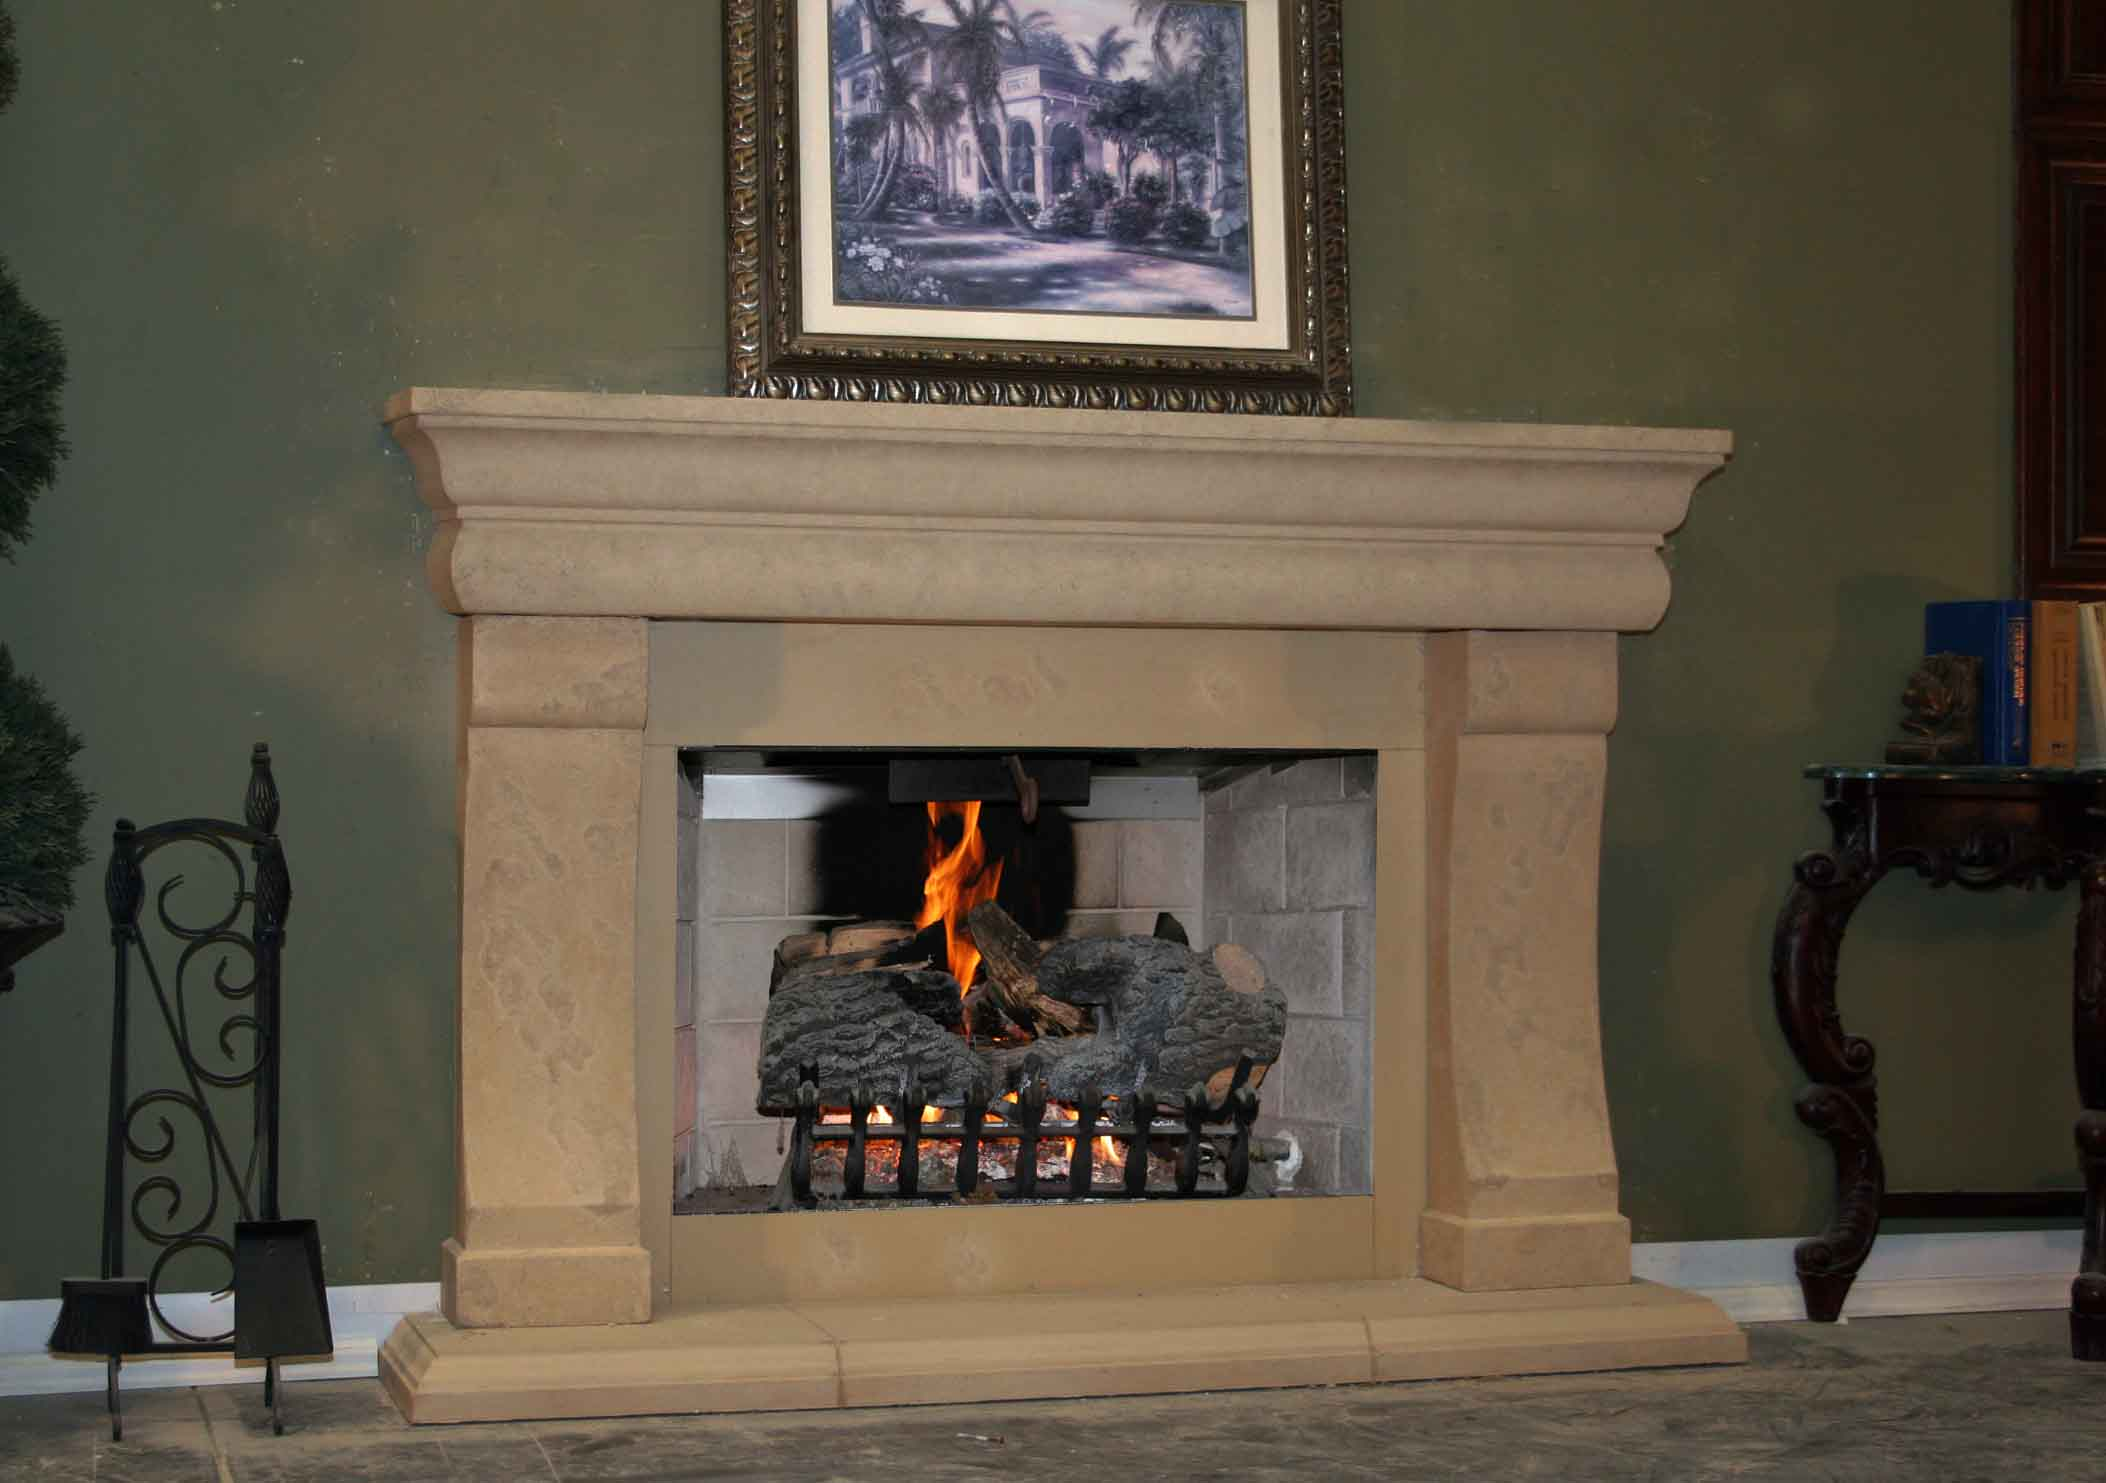 Mt235 Fireplace Mantels Fireplace Surrounds Iron Fireplace Doors And Screens In San Diego